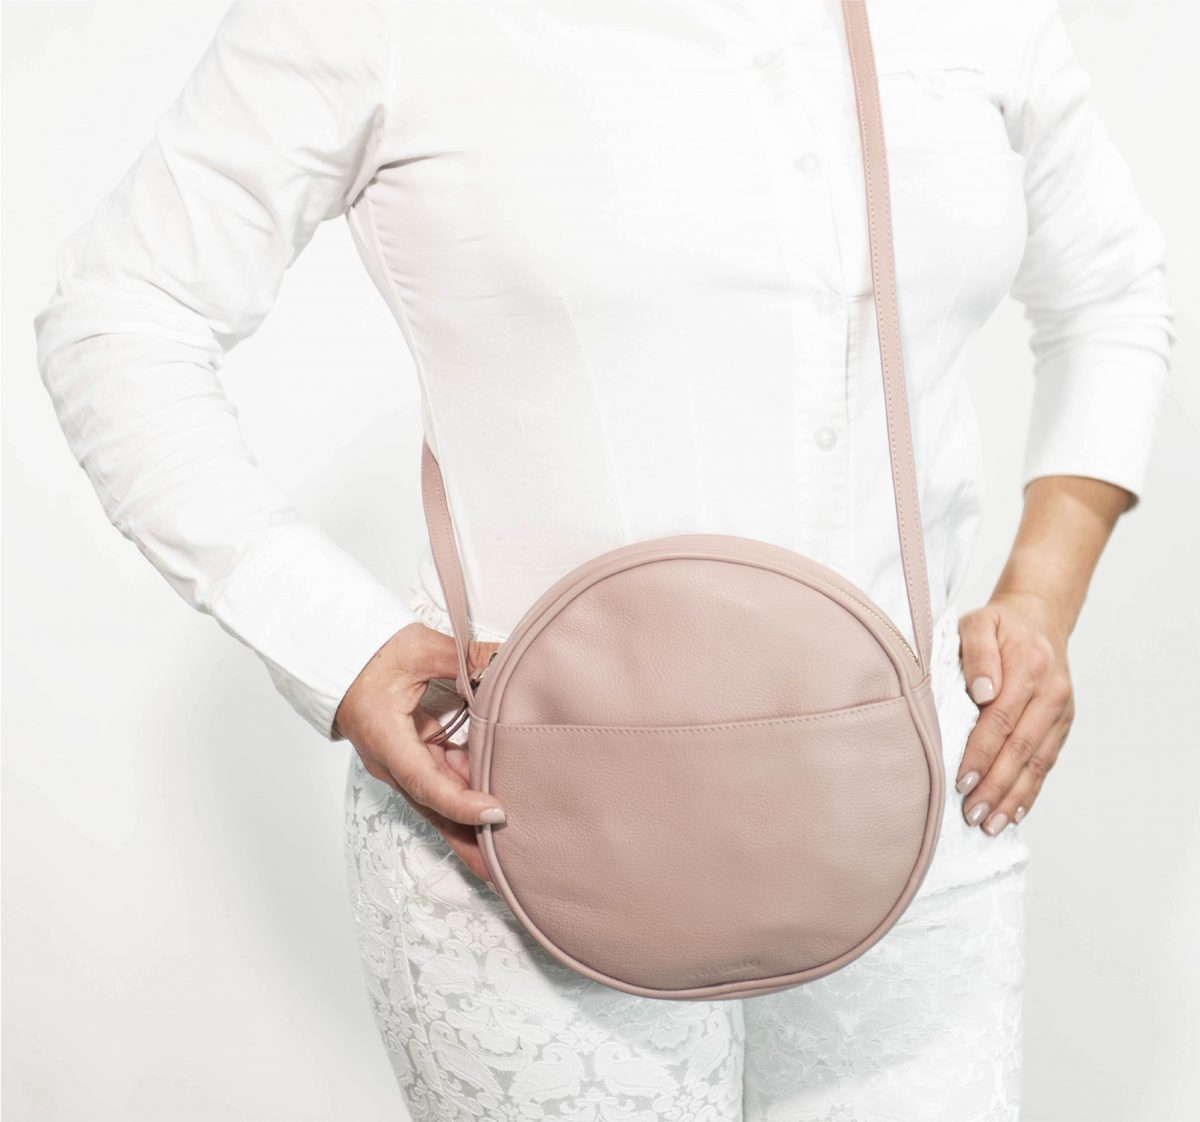 armadillo-leather-handbags-totes-wallets-clutches-backpack-small-leather-goods-accessories-office-travel-gifts-in-canada-circle-purse-pink-mauve-dusty-pink-rose